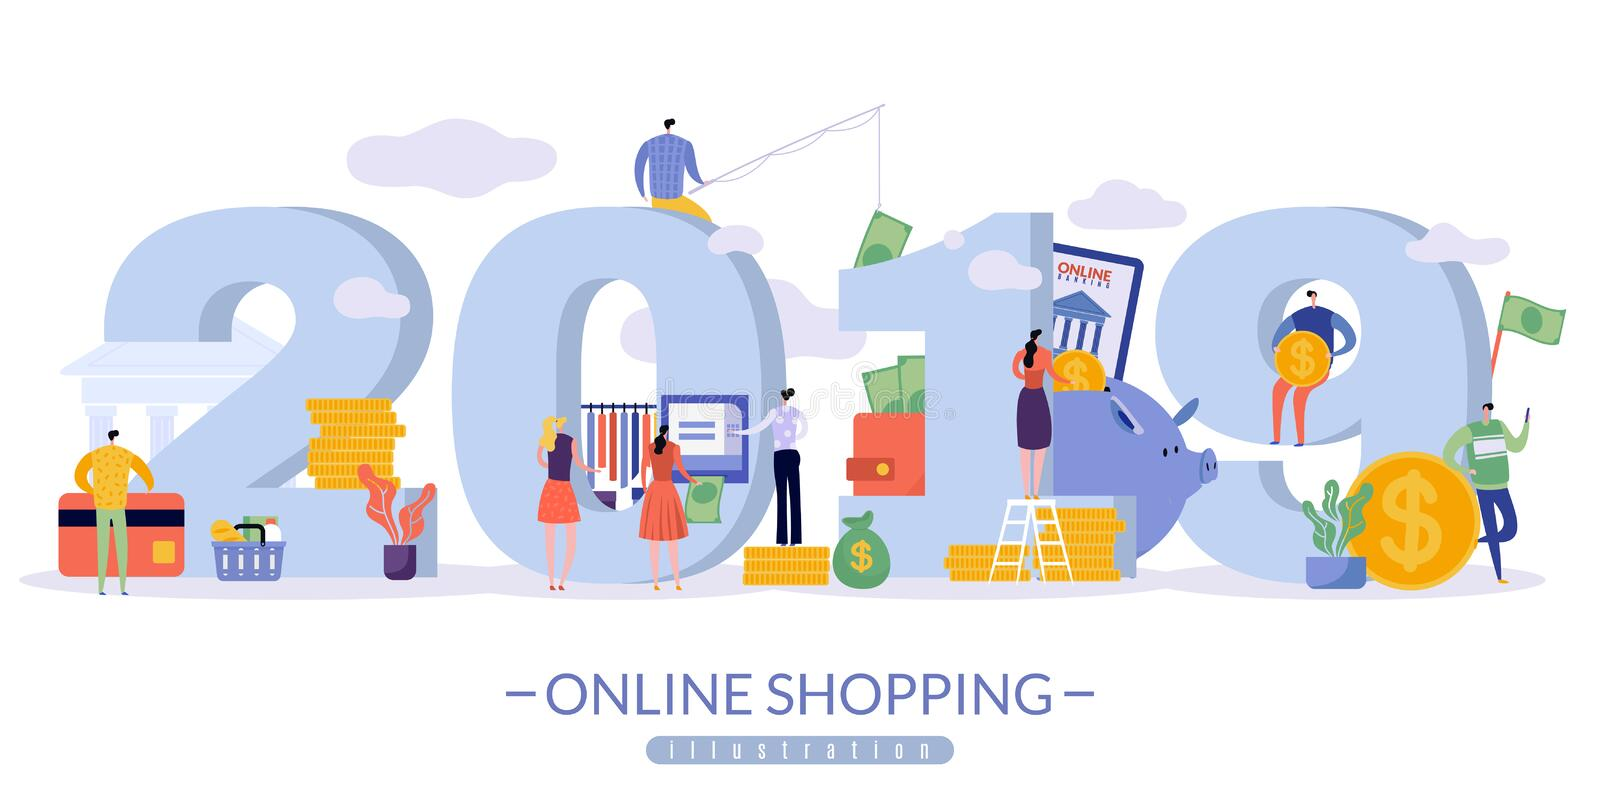 Online sales banner with the image of 2019 in large print royalty free illustration